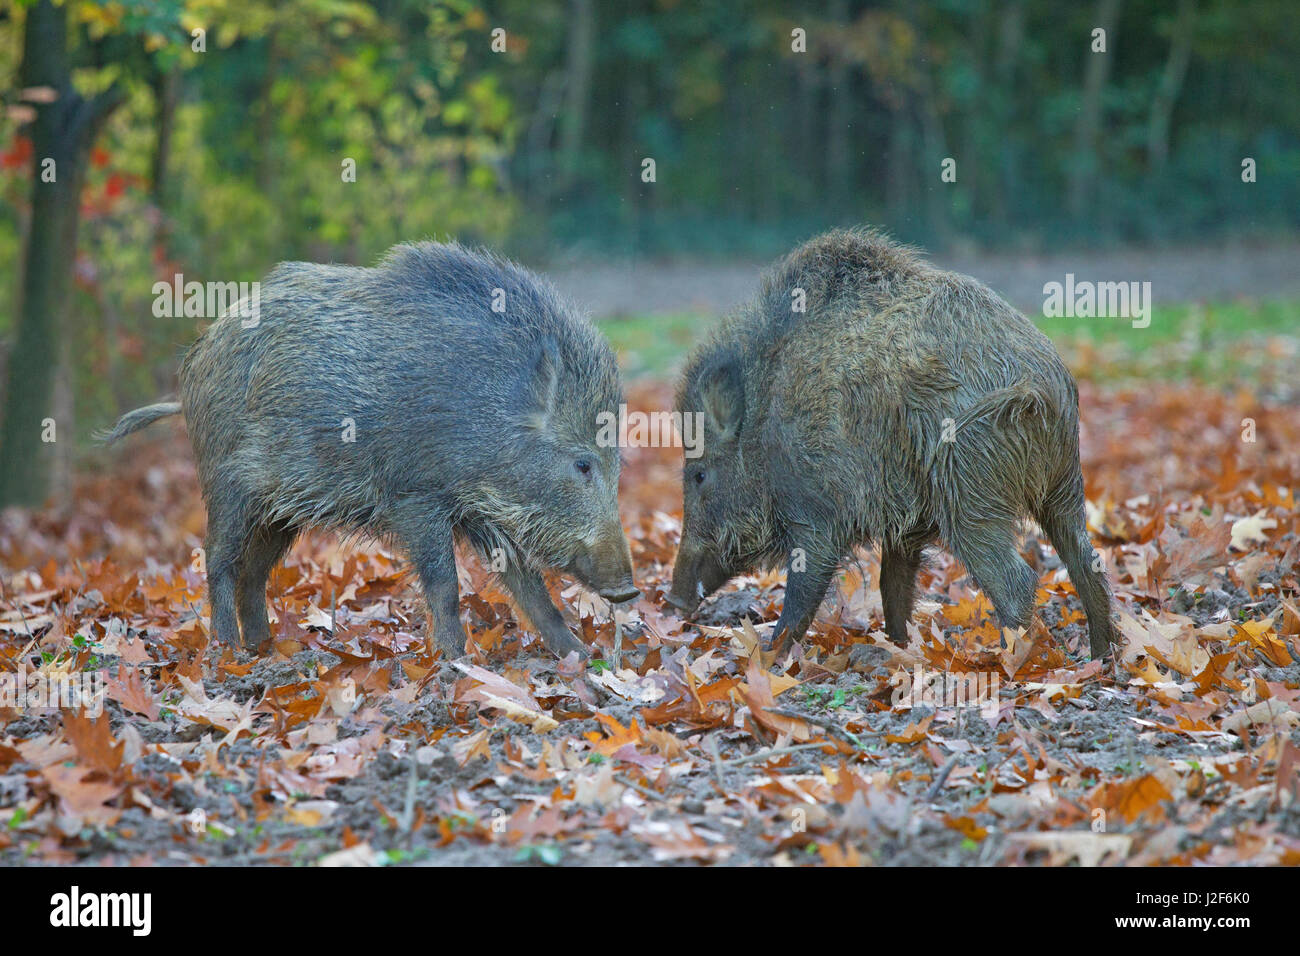 photo of two fighting wild boars - Stock Image